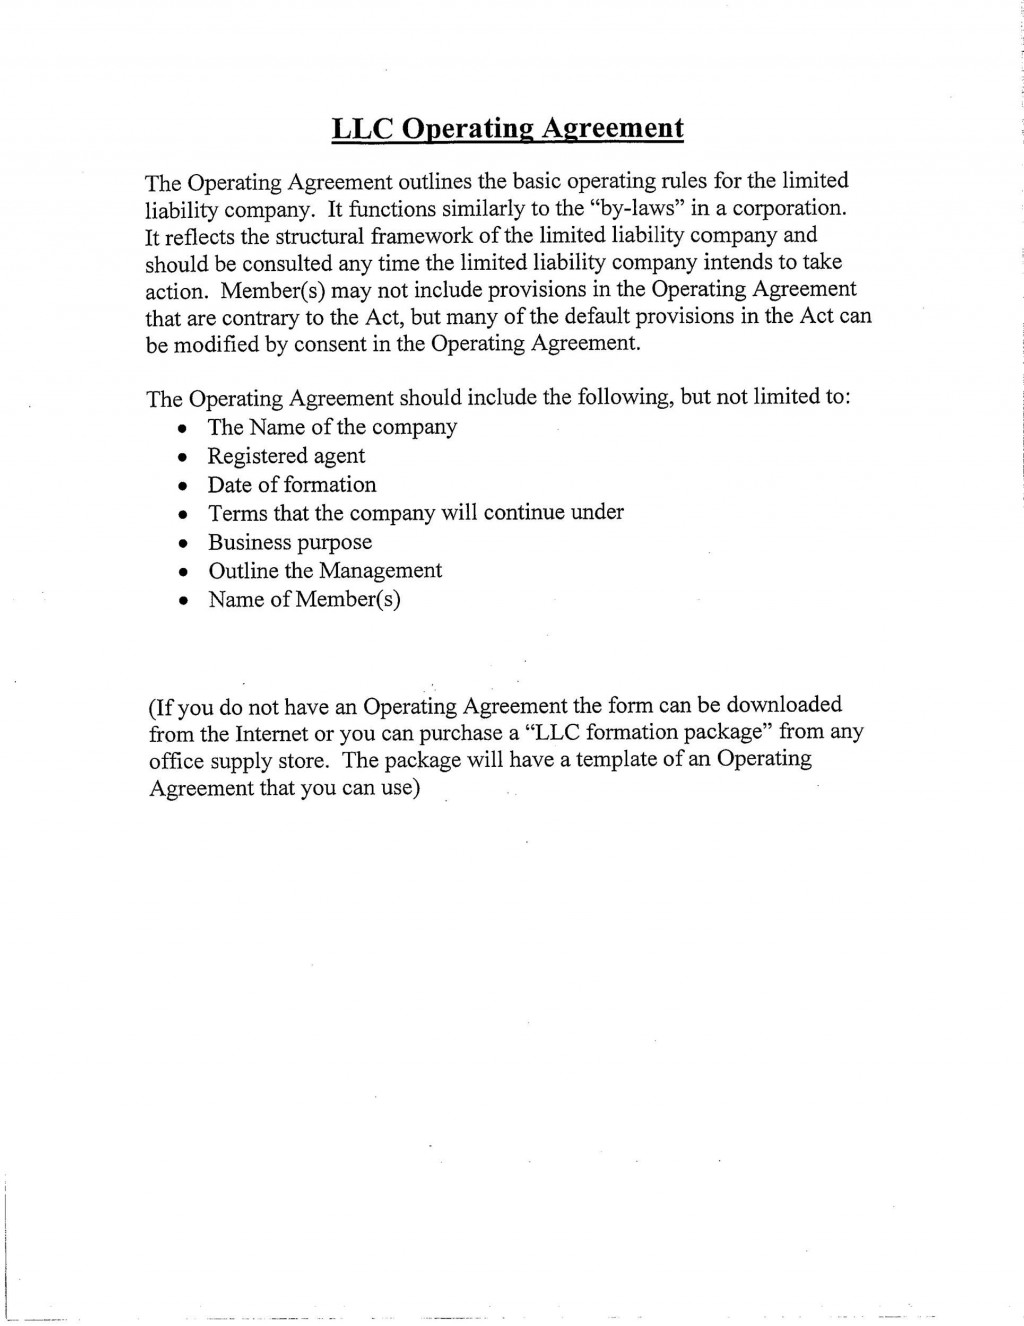 008 Striking Buy Sell Agreement Llc Template Free Picture Large